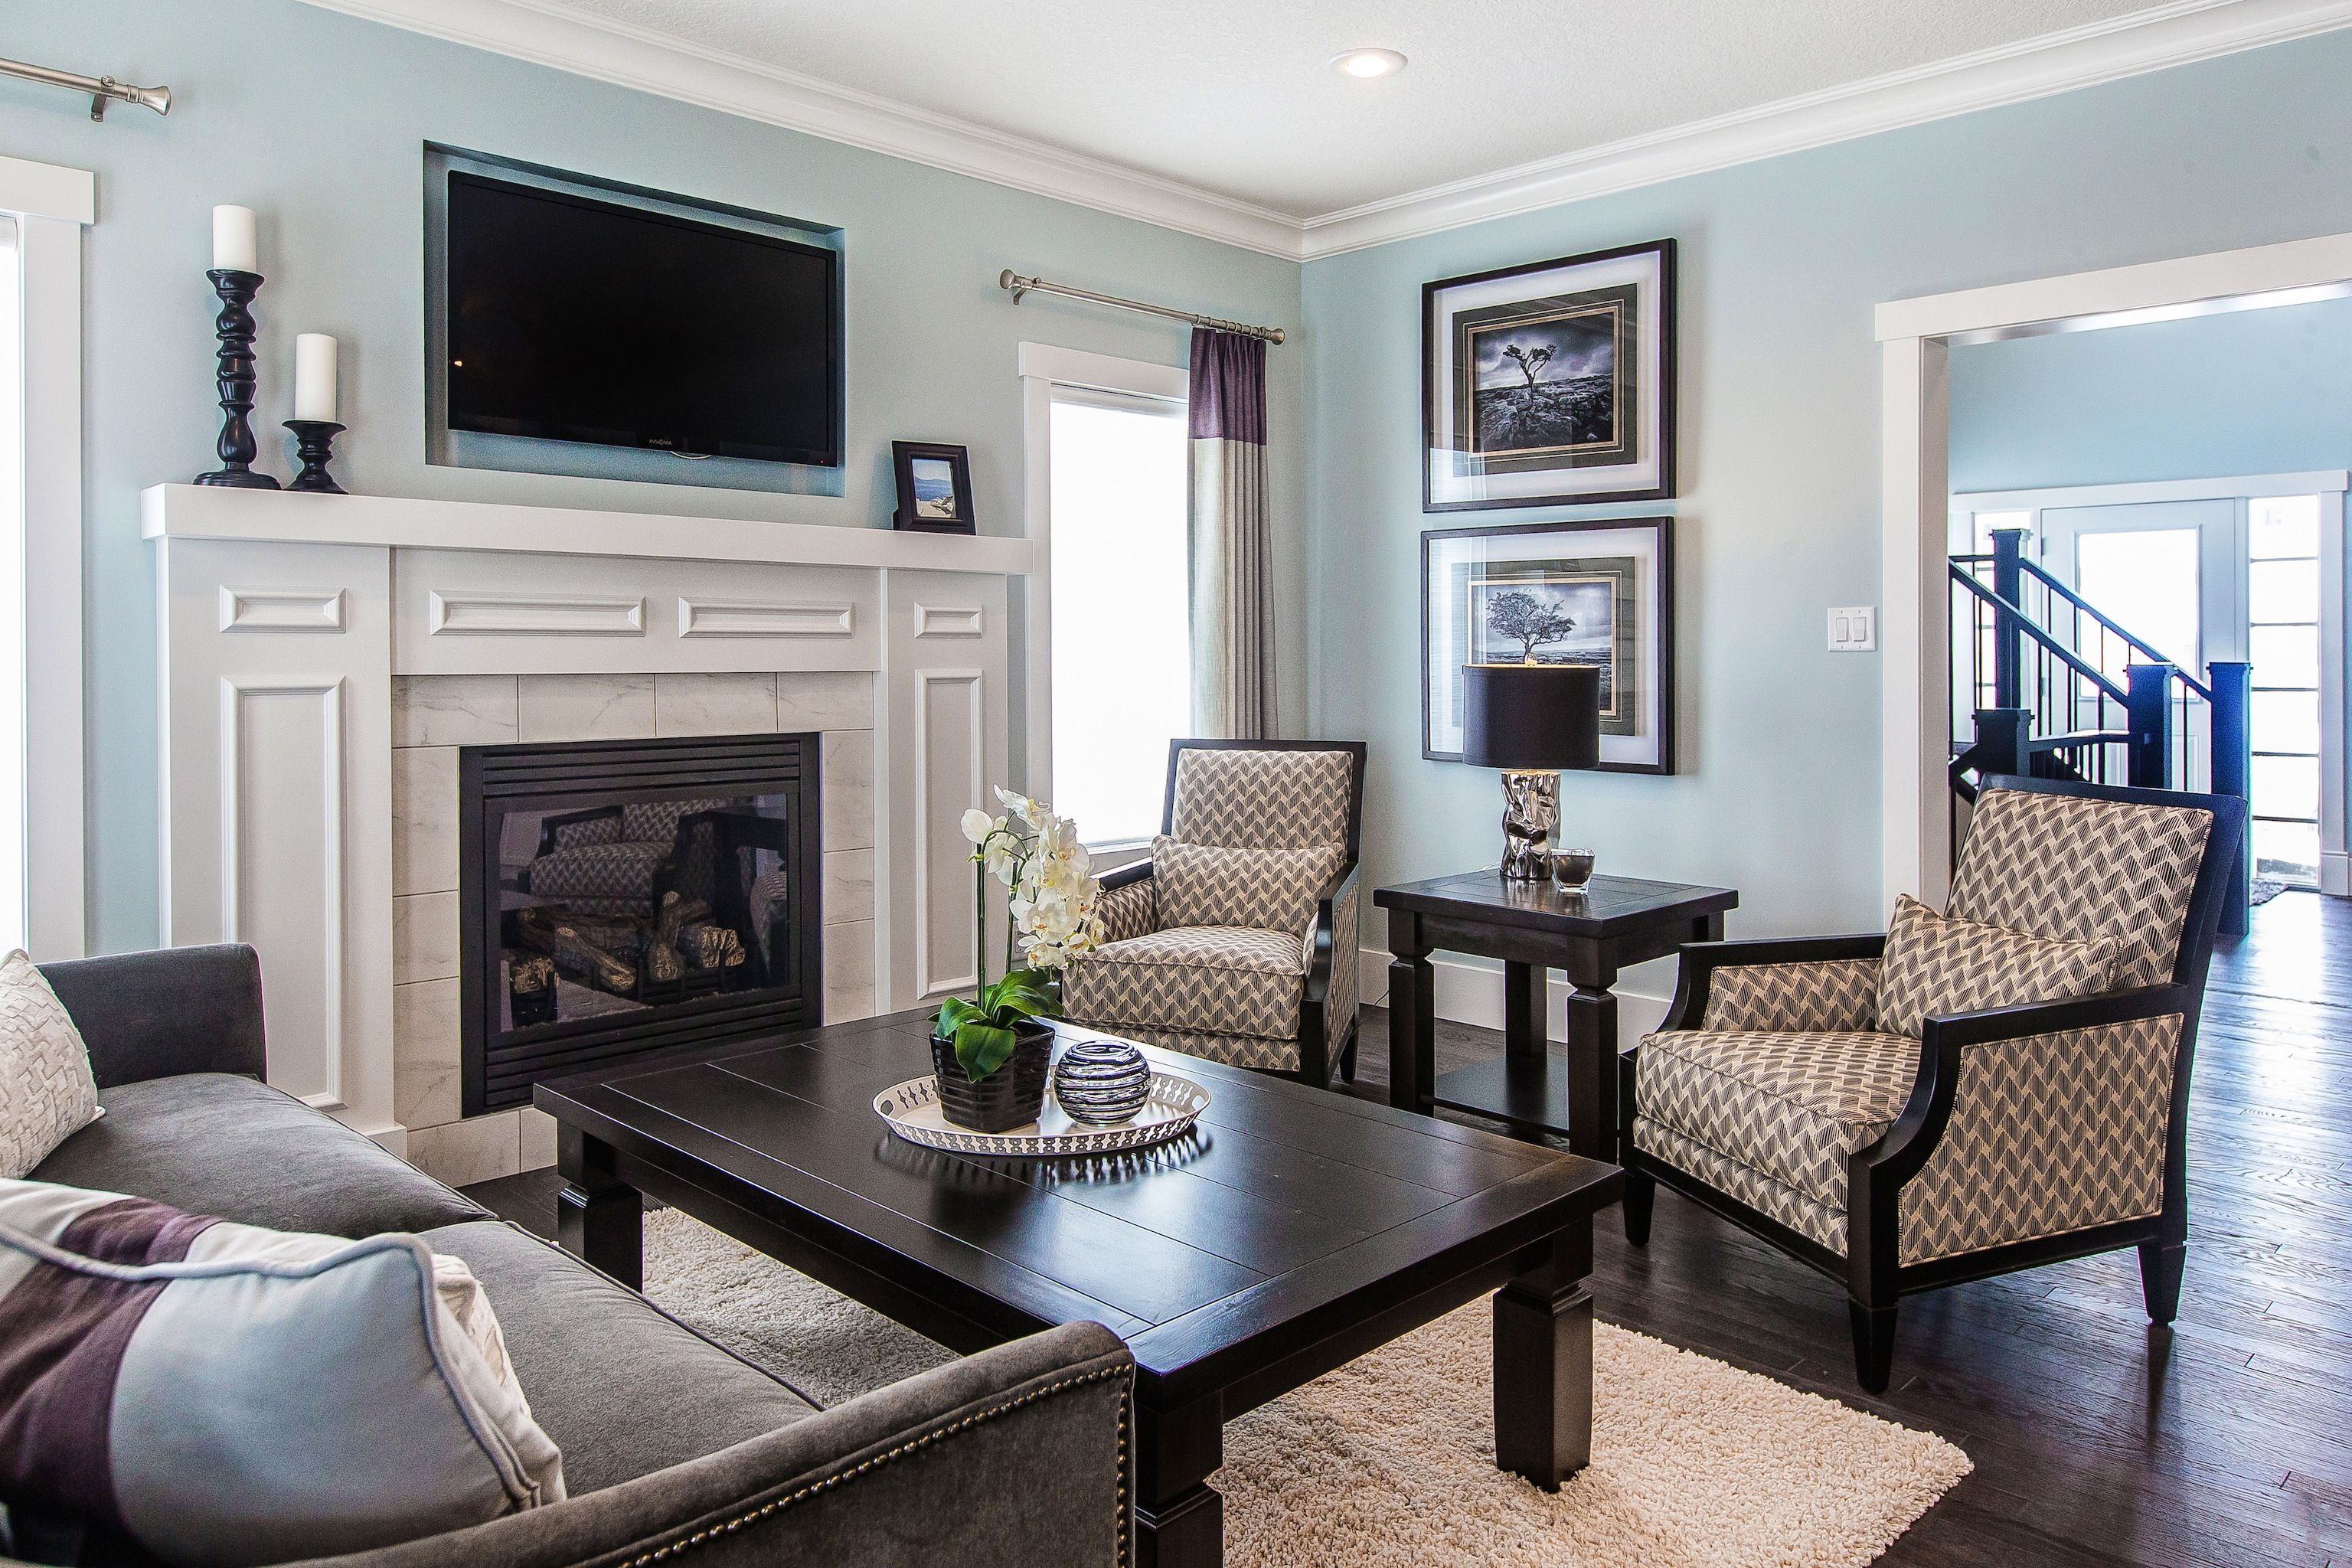 Marcson Homes - Kimberley - Living Room | Showhomes - Marcson ...